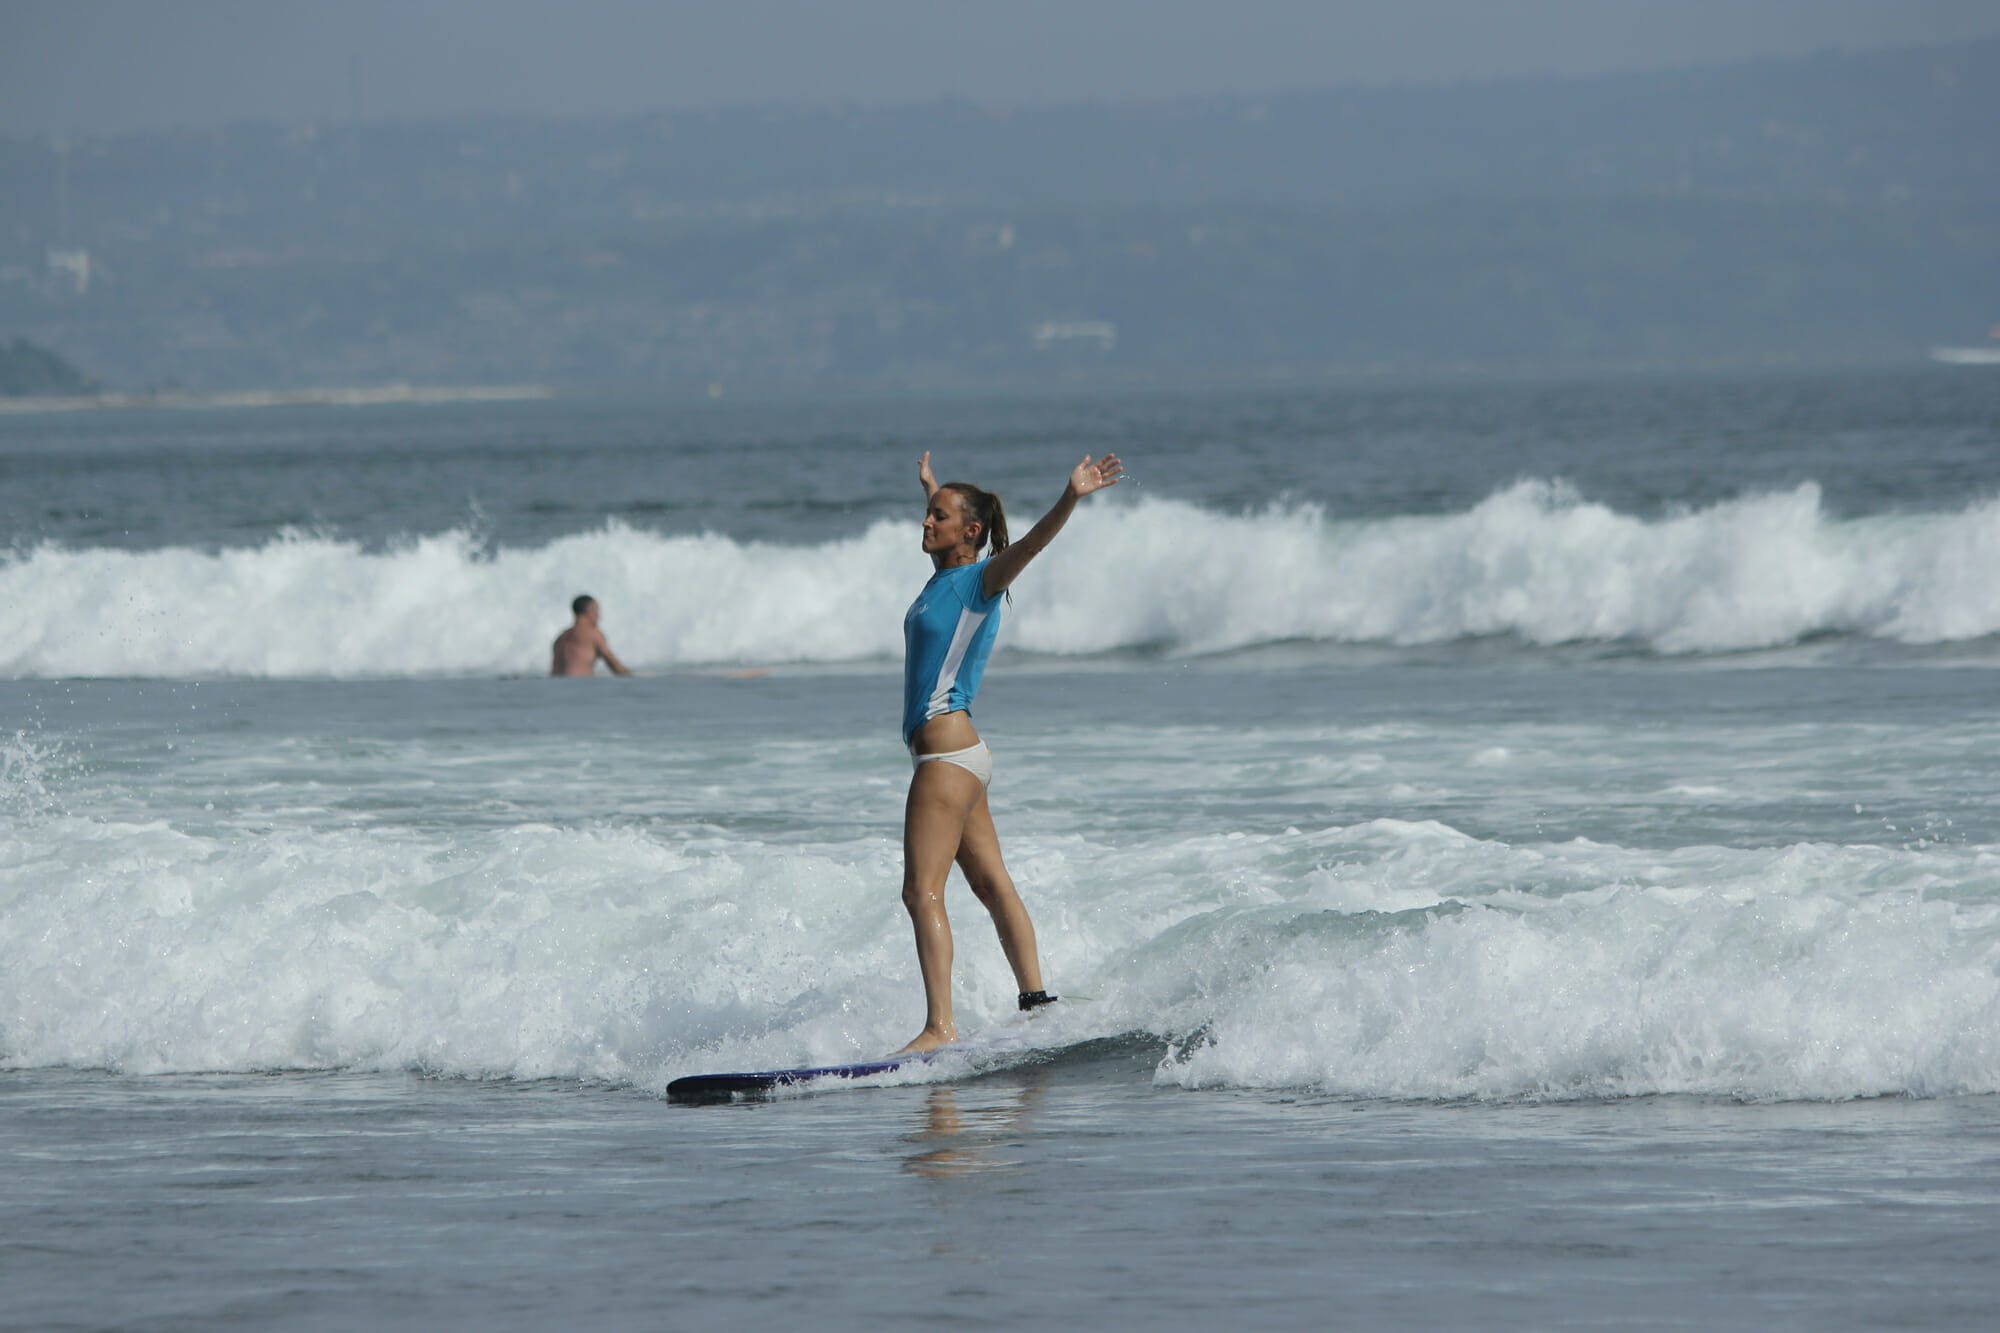 solo surfing